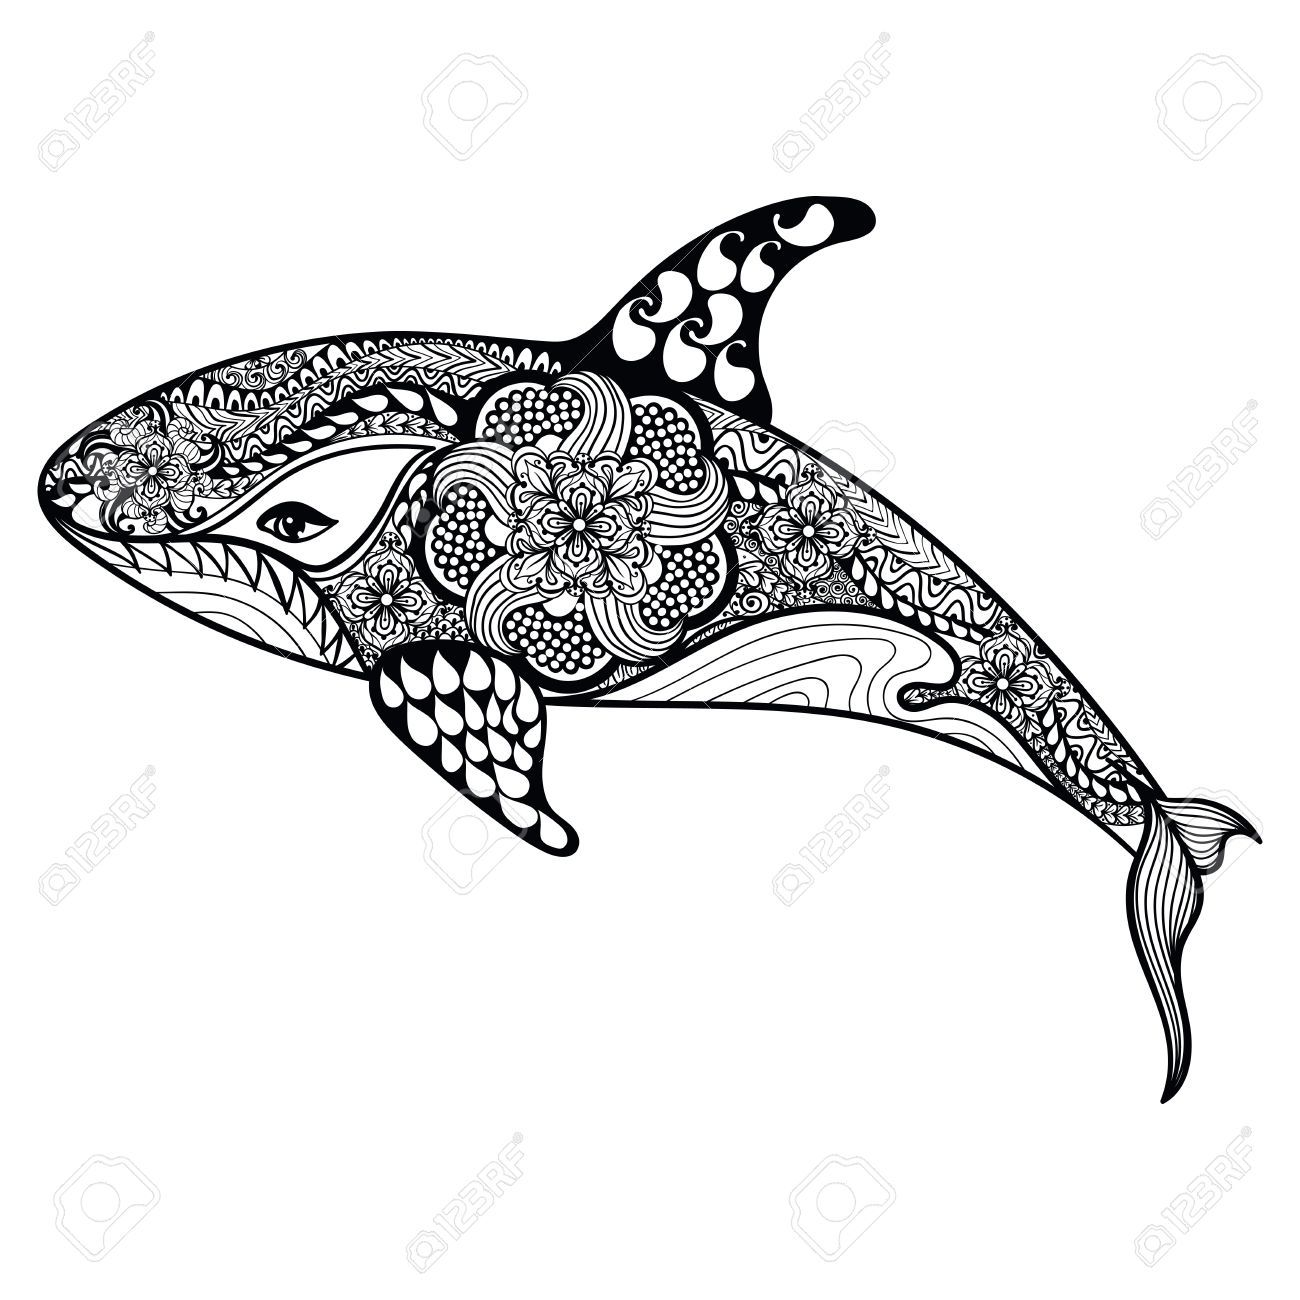 Stock Vector Whale Coloring Pages Animal Doodles Zentangle